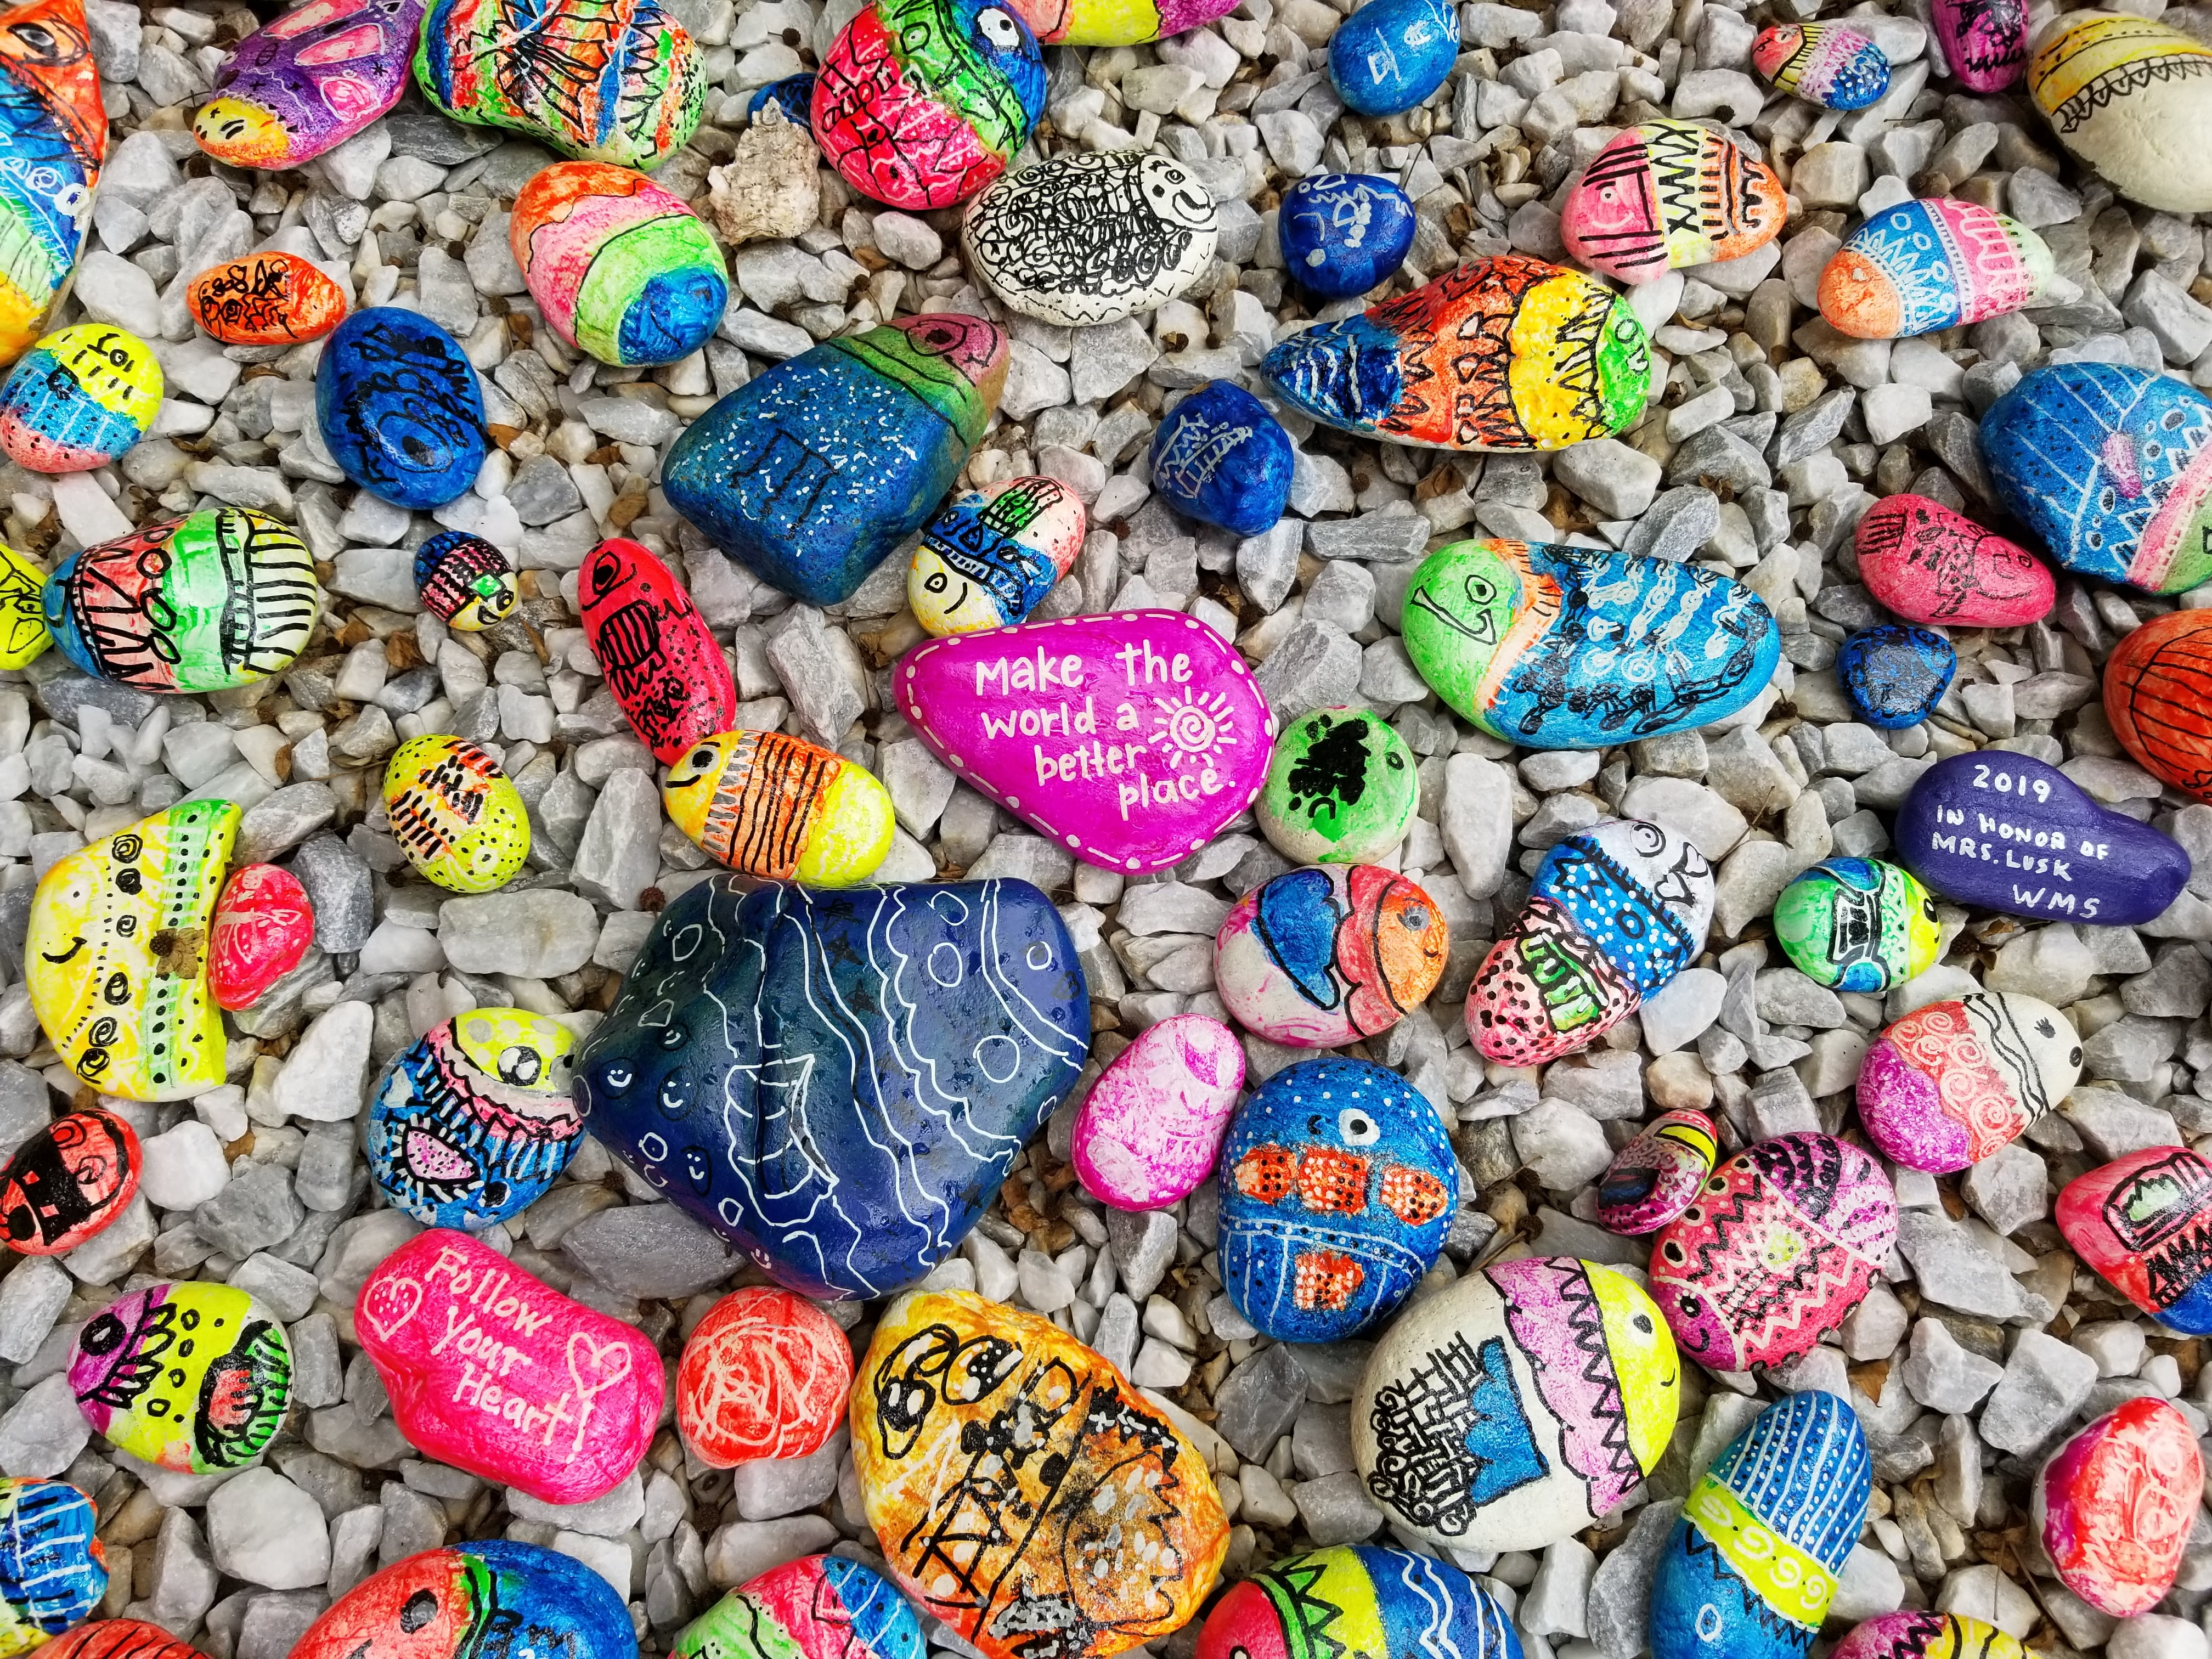 Pebbles painted with colourful messages of kindness